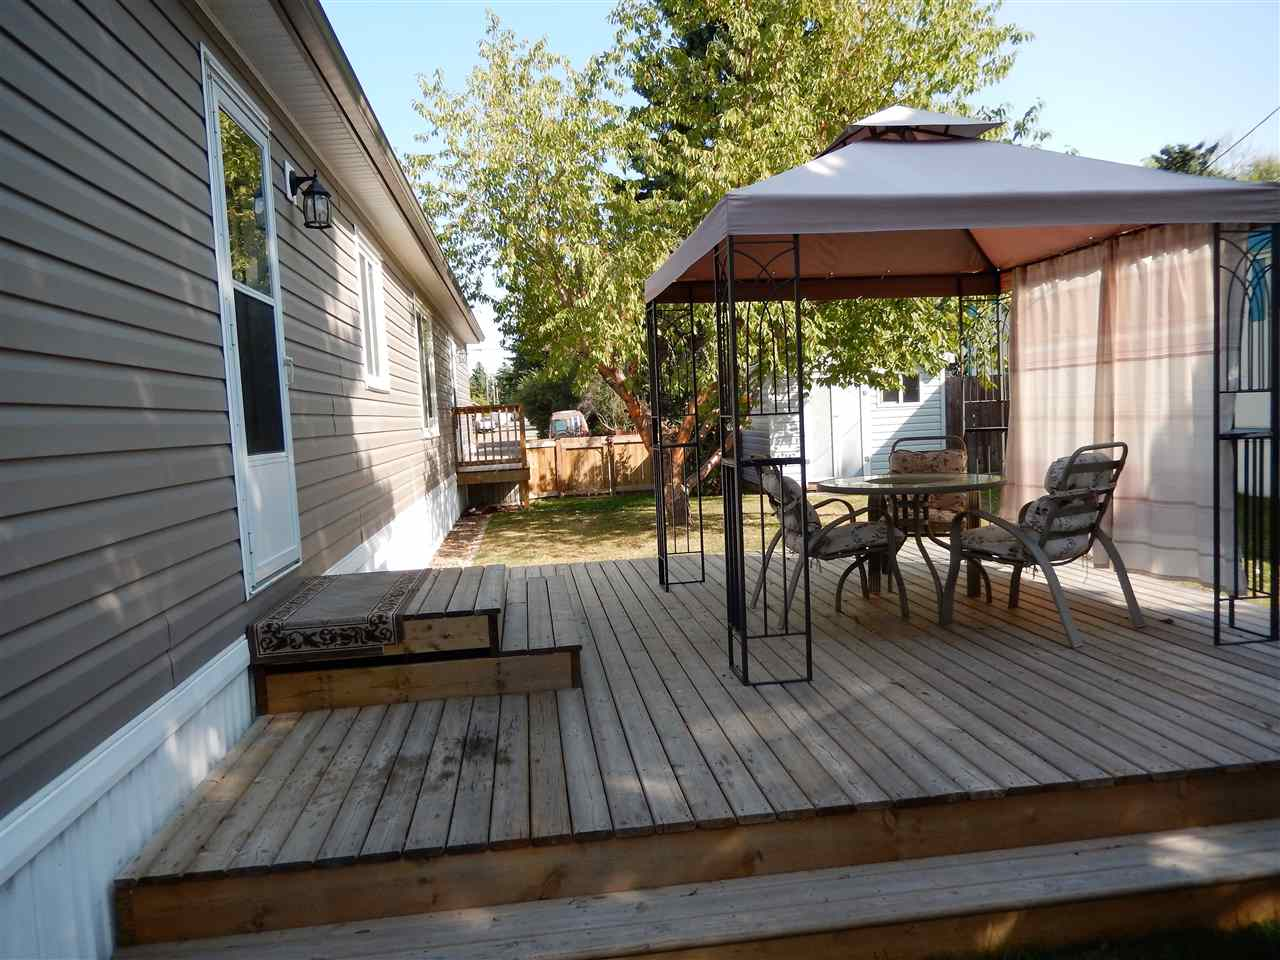 FREE LOT RENT TO END OF YEAR!!  JUST LIKE NEW and BACKING ONTO FIELD! Really LARGE FENCED YARD with plenty of MATURE TREES including CHERRY TREES..... Super private, LARGE DECK, 10x10 SHED & a 2ND SHED....definitely the BEST LOT IN MOBILE CITY! This 2015 home was moved in 2 yrs ago, so not only was the home new, but the fencing, deck, blocking, skirting & sheds were too! The home has been WELL CARED for by the seller's parents.  Beautiful KITCHEN with GORGEOUS cupboards, raised LUNCHBAR, STAINLESS APPL, & attractive VINYL flooring....HUGE LAUNDRY/UTILITY ROOM (plenty of storage).  The MASTR BEDR has a WALK-IN CLOSET & ENSUITE with large SOAKER TUB. At the other end is 2 more bedrs & FULL BATHR. Also transferrable WARRANTY.  The seller has installed SHUT VALVES under every sink. GAZEBO incl. Mobile City sits in the heart of Spruce Grove and is within walking distance of many amenities as well as the walking/bike trails system.